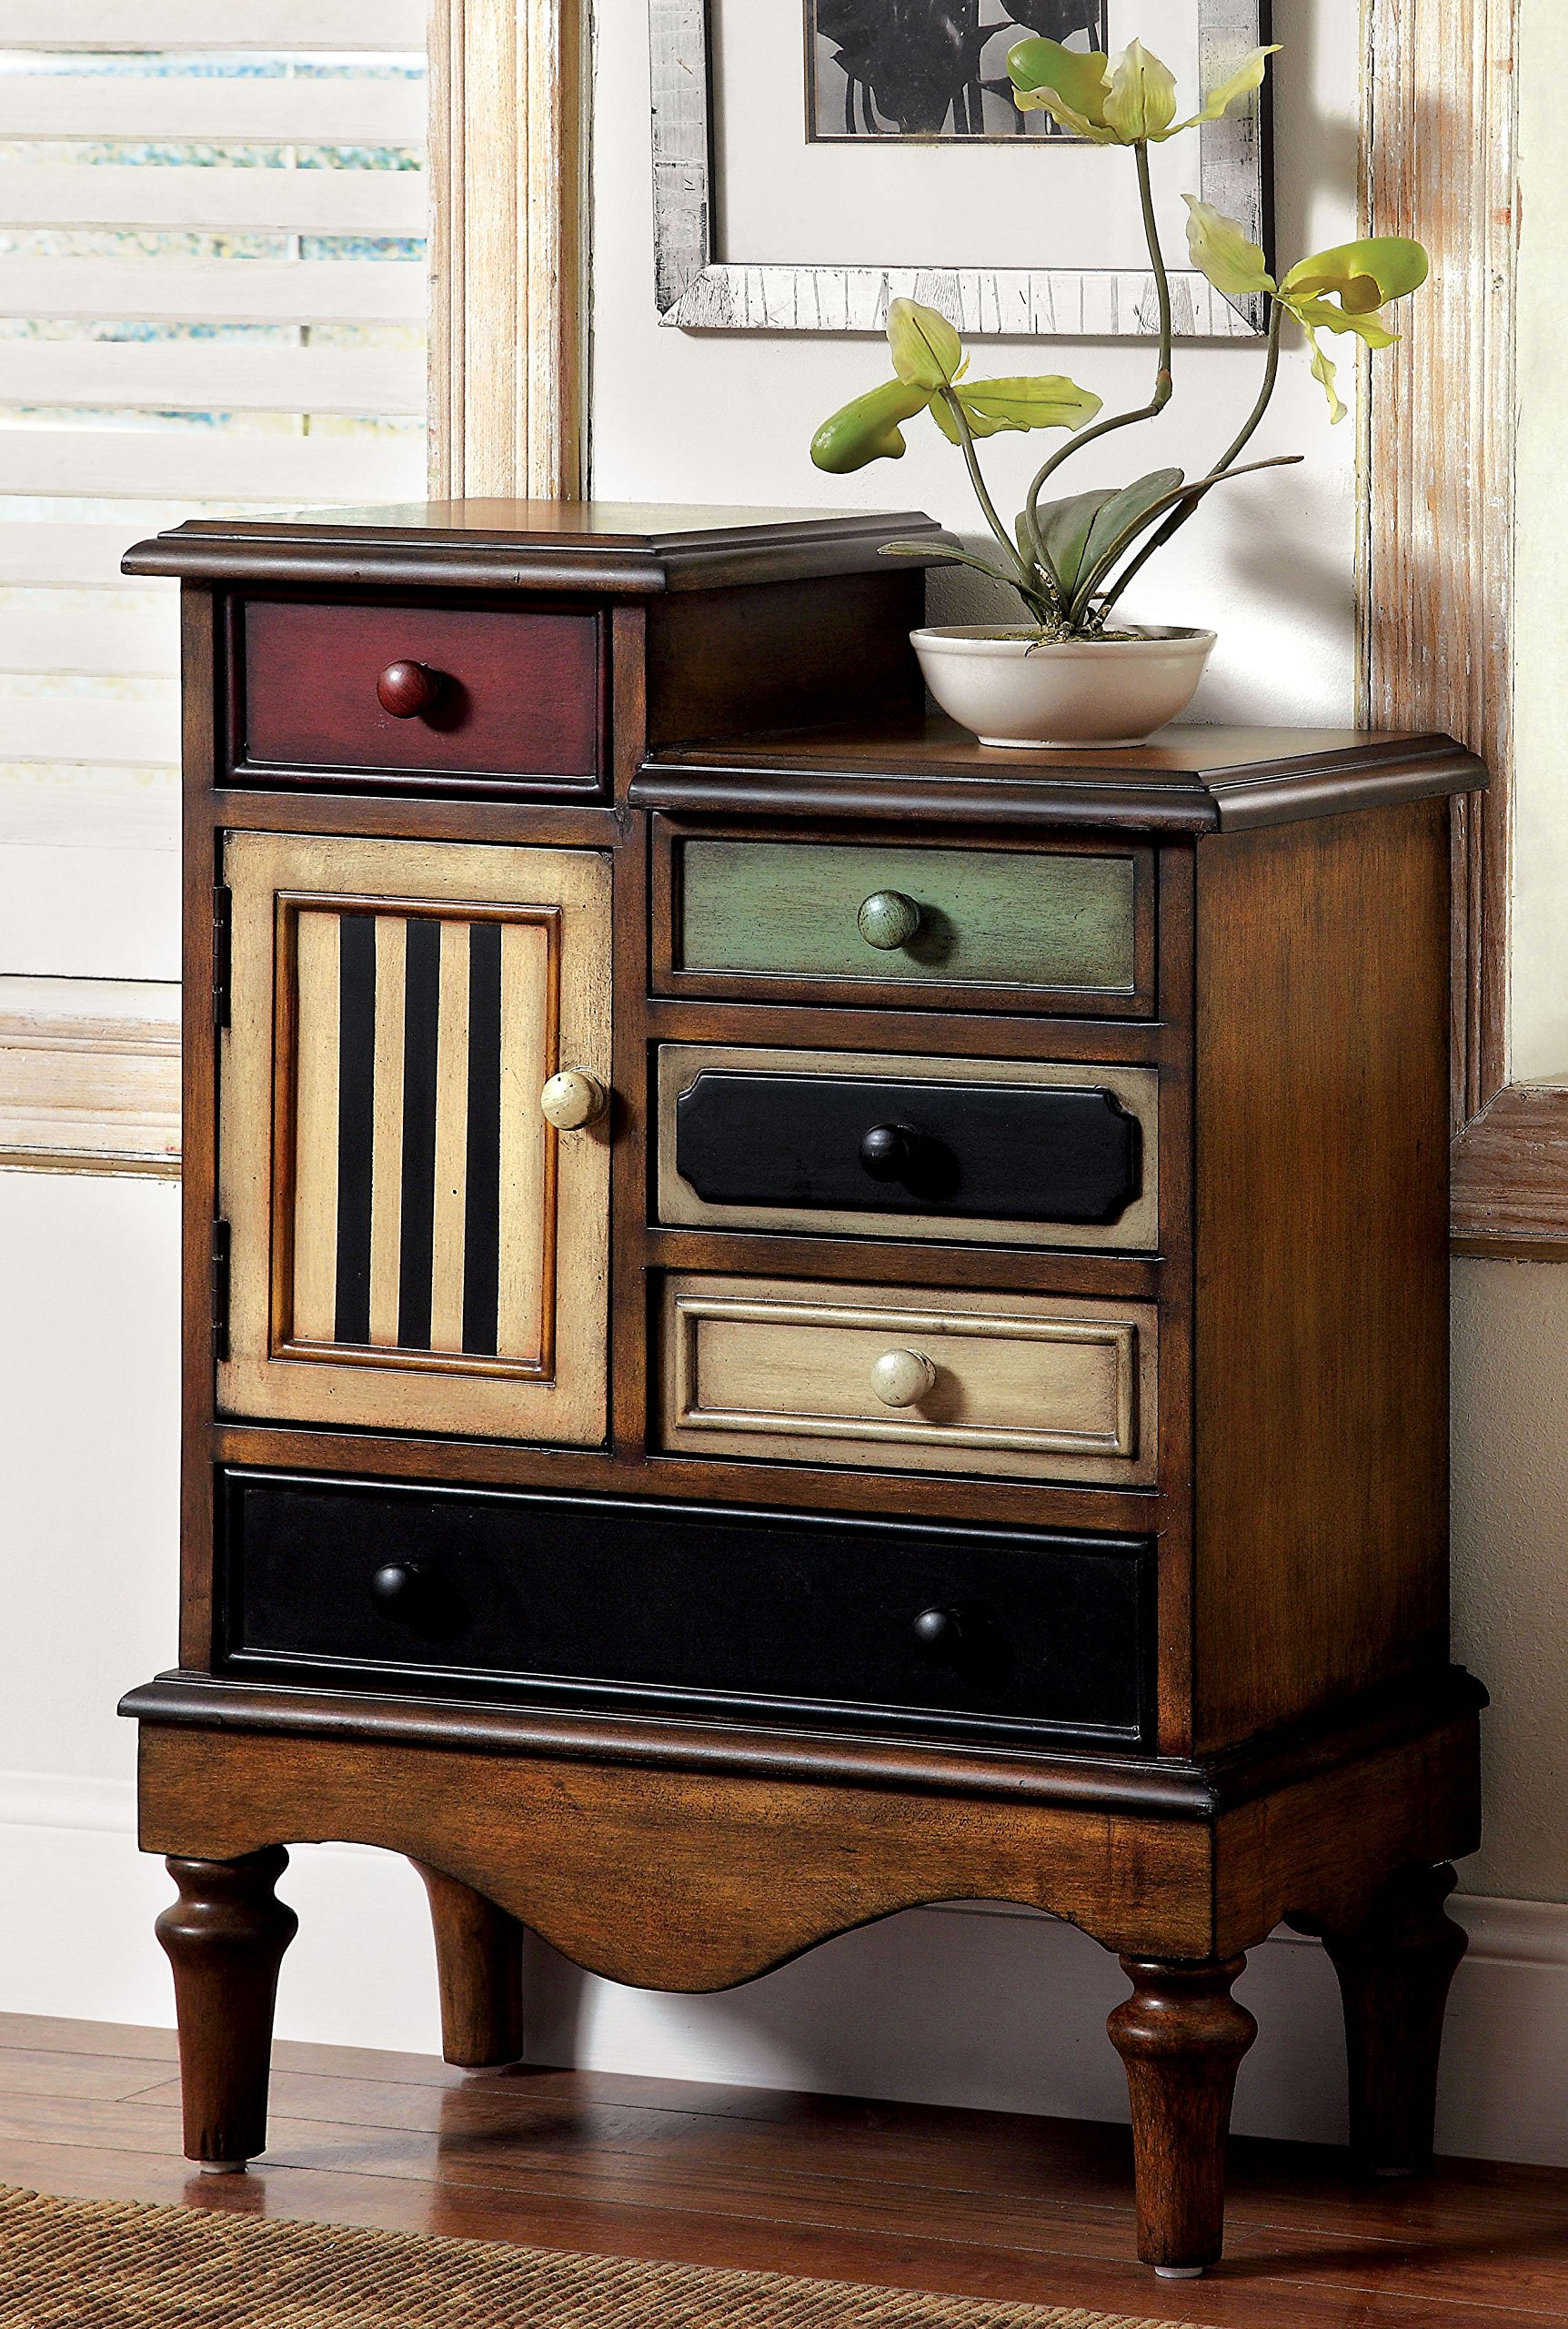 Vintage Inspired Furniture